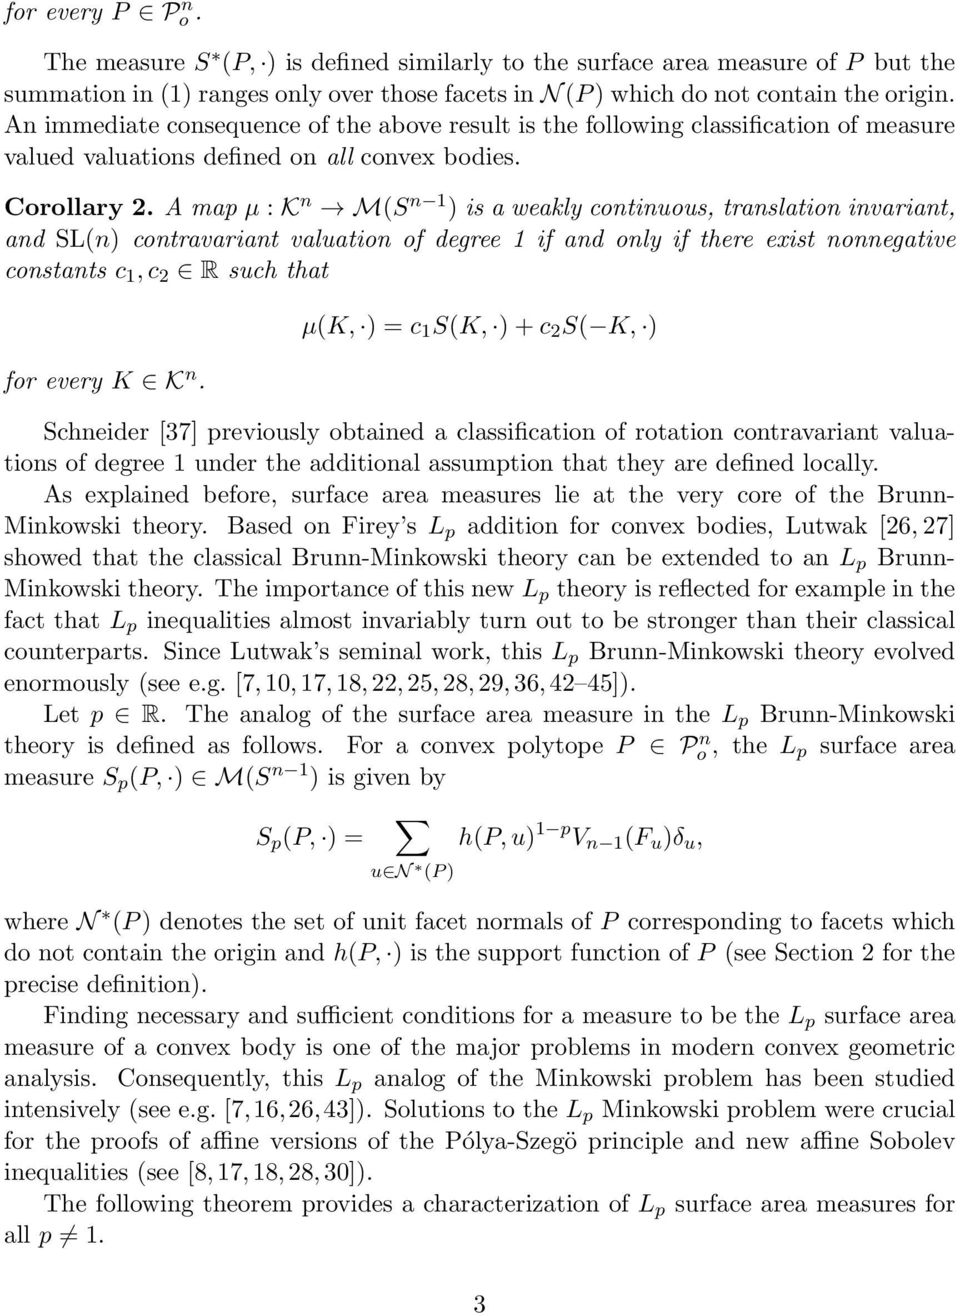 A map µ : K n M(S n ) is a weakly continuous, translation invariant, and SL(n) contravariant valuation of degree if and only if there exist nonnegative constants c, c 2 R such that for every K K n.